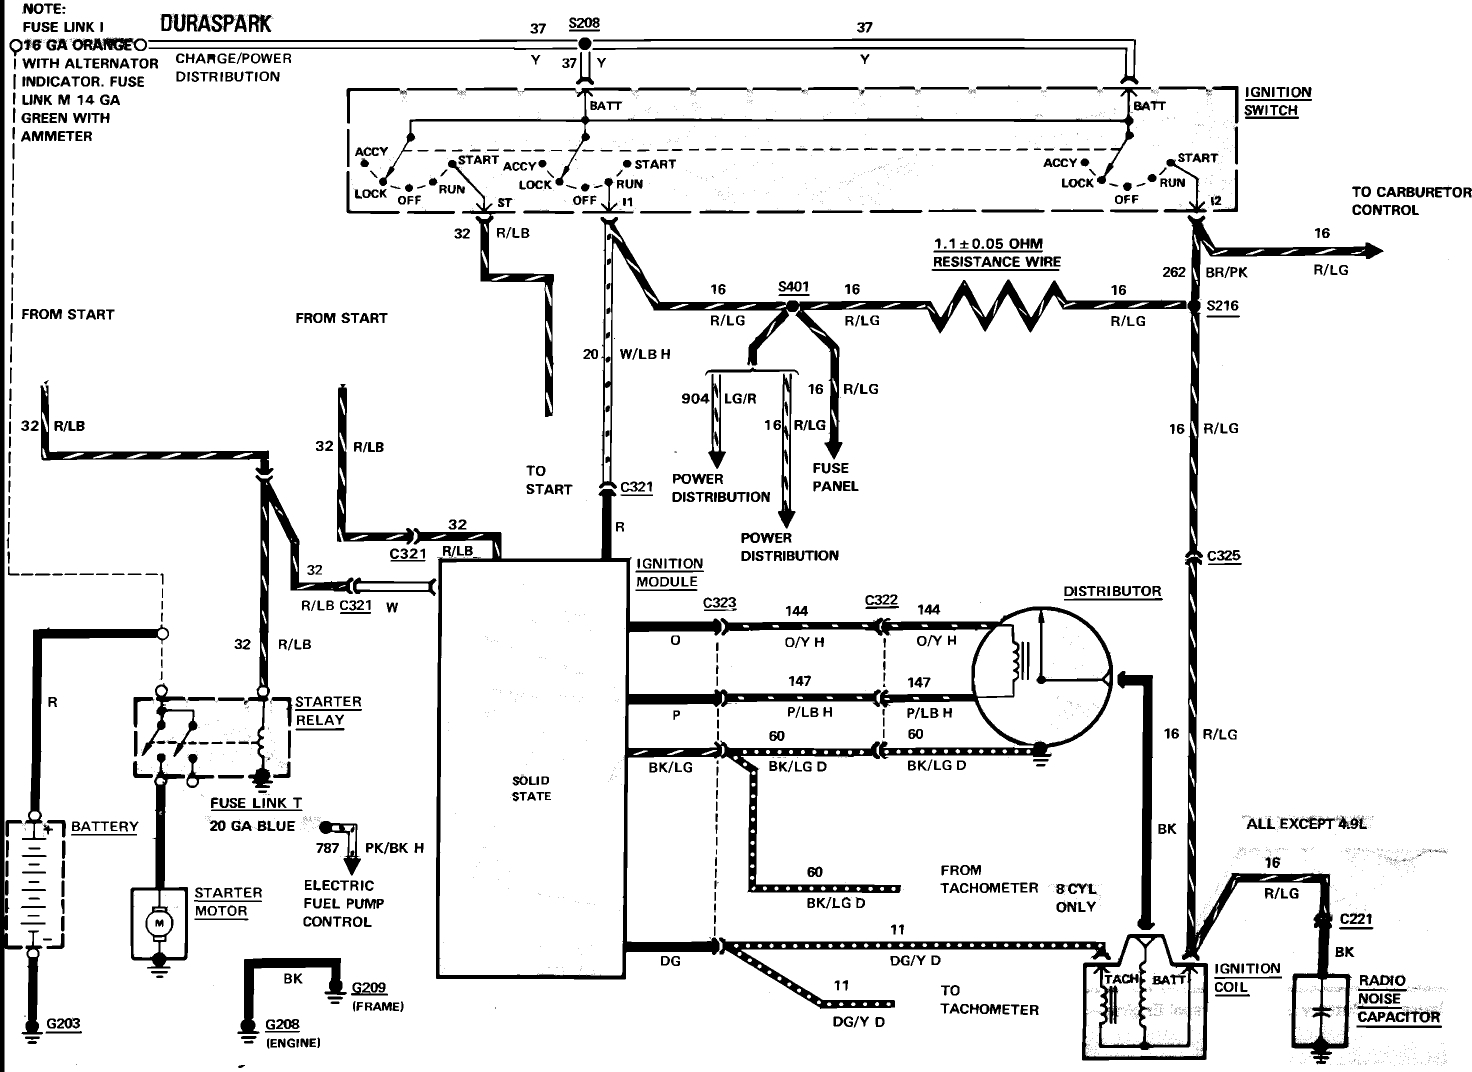 wiring diagram besides 1990 ford f 250 ignition wiring diagram